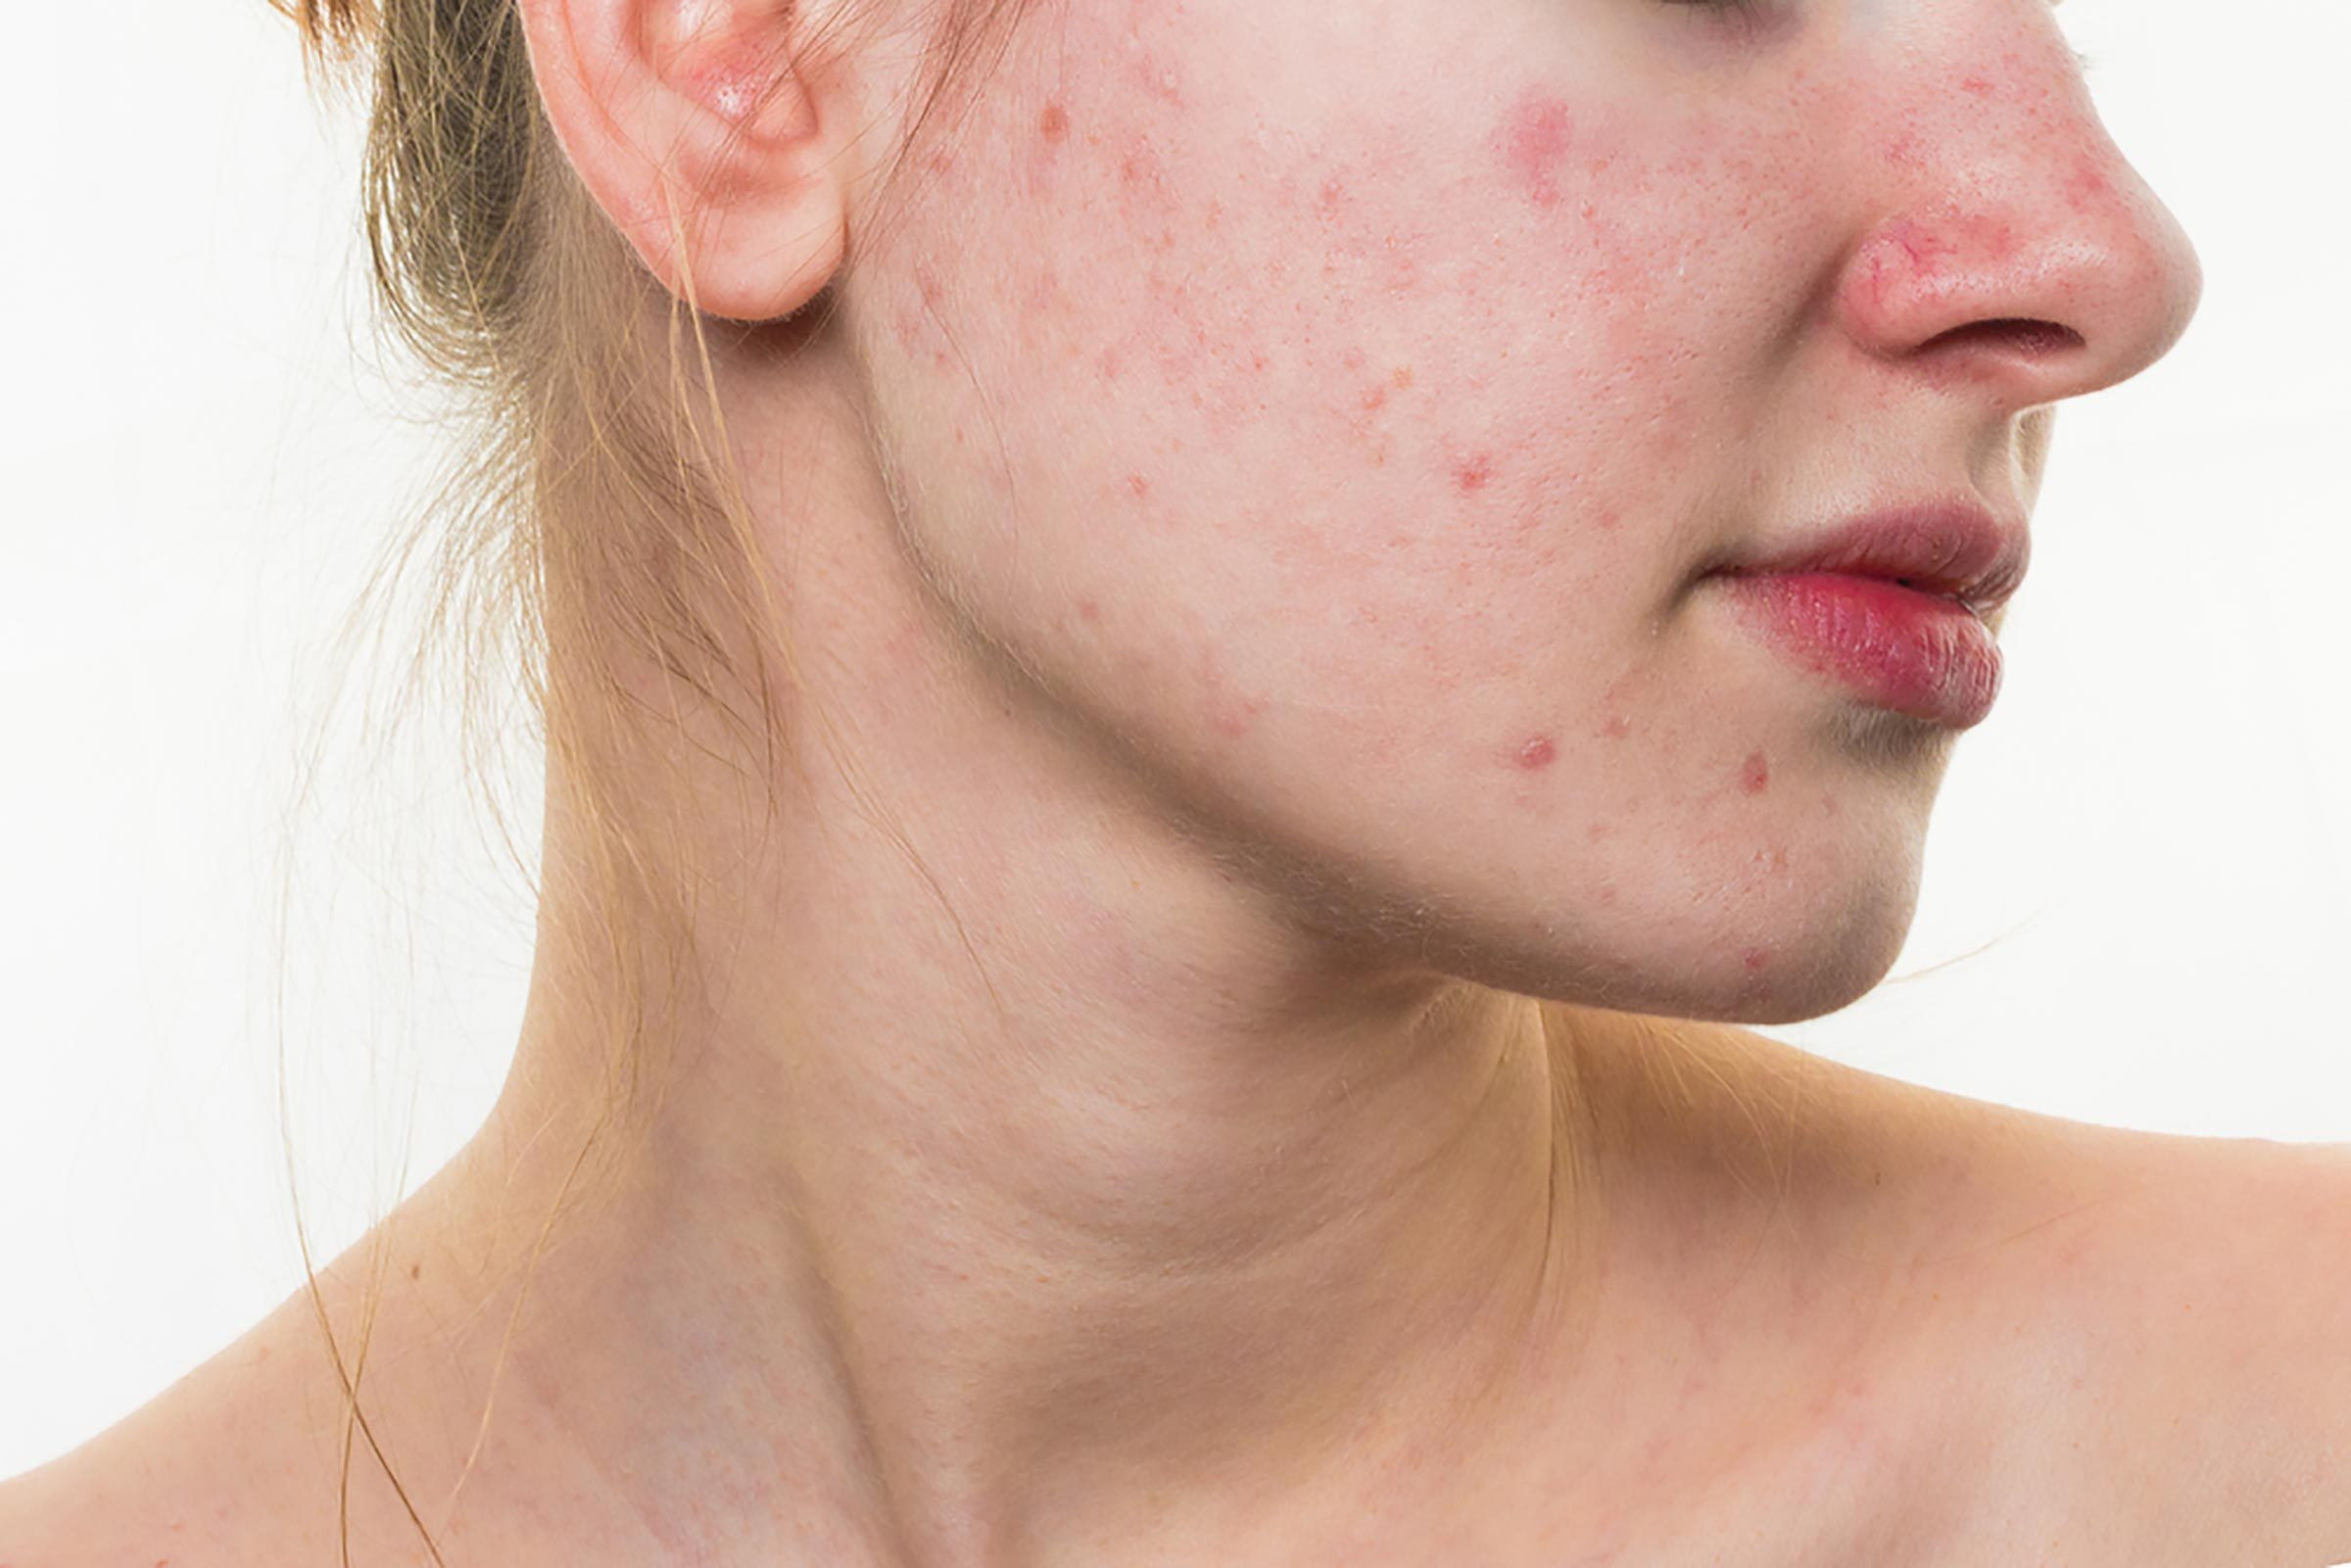 Woman with acne on her face